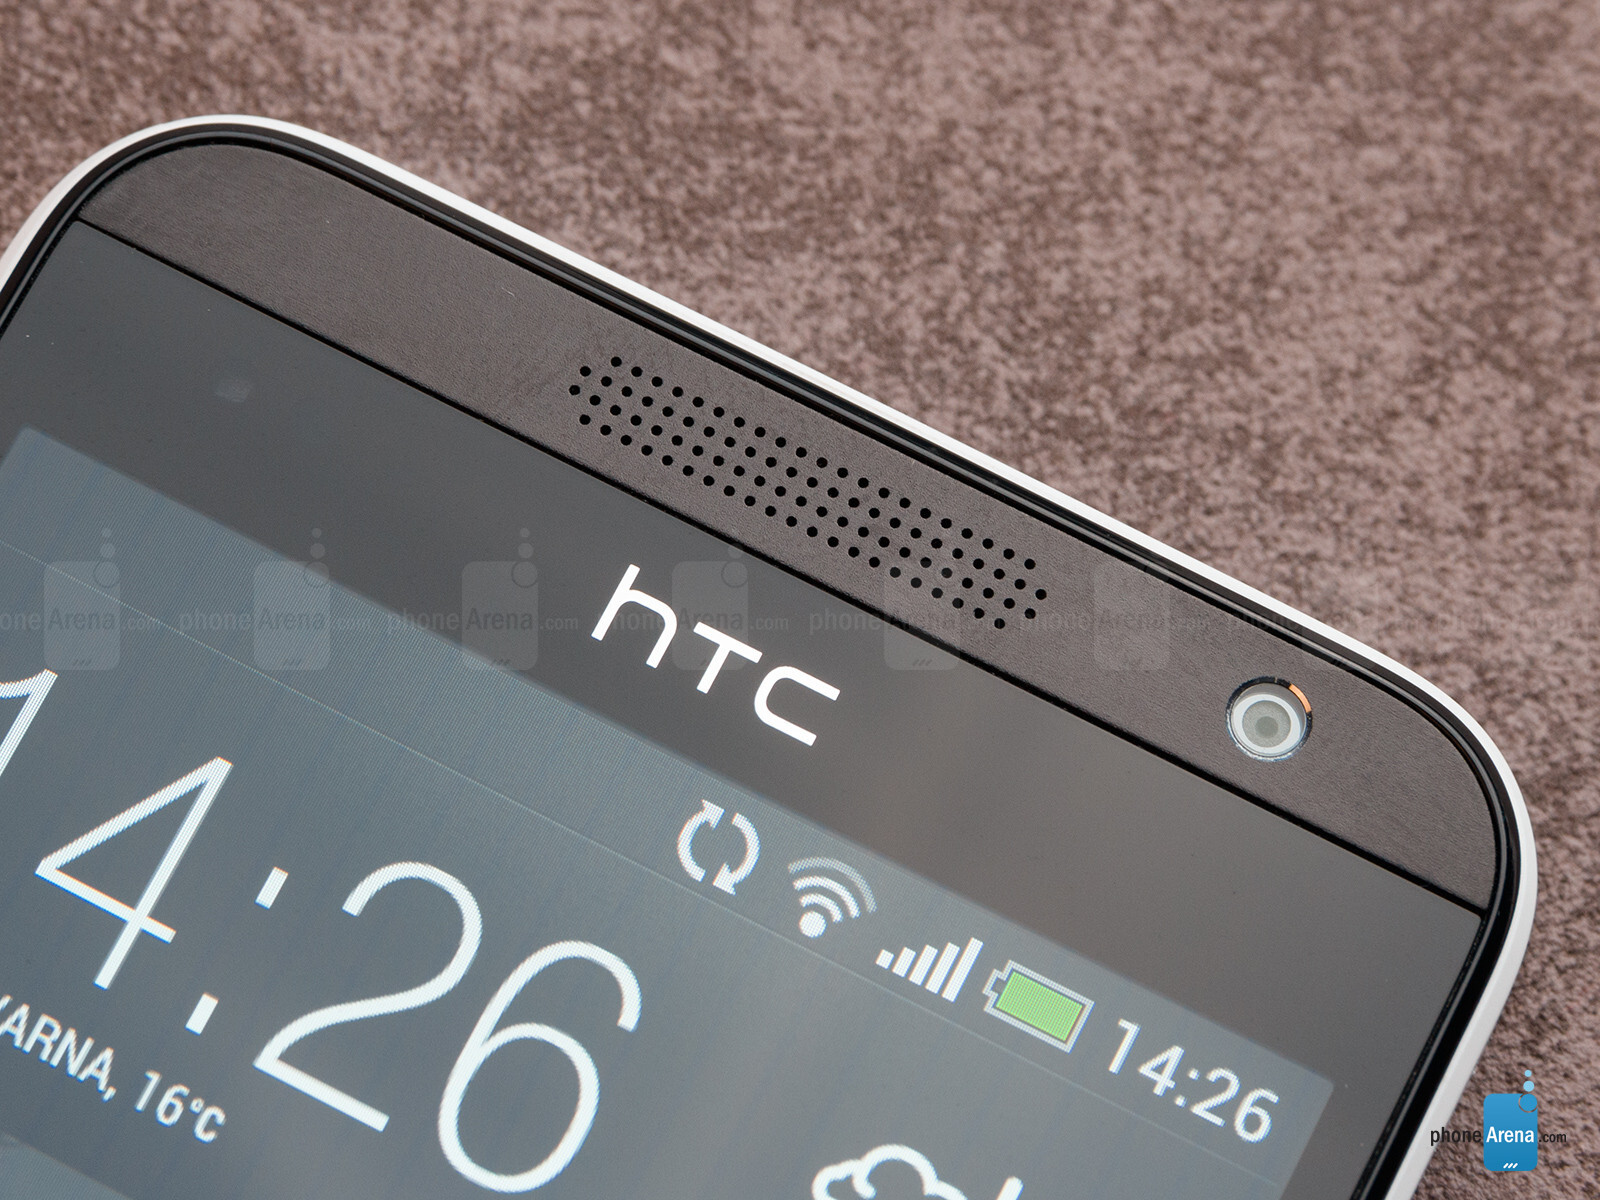 http://i-cdn.phonearena.com/images/reviews/144298-image/HTC-Desire-300-Review-005.jpg